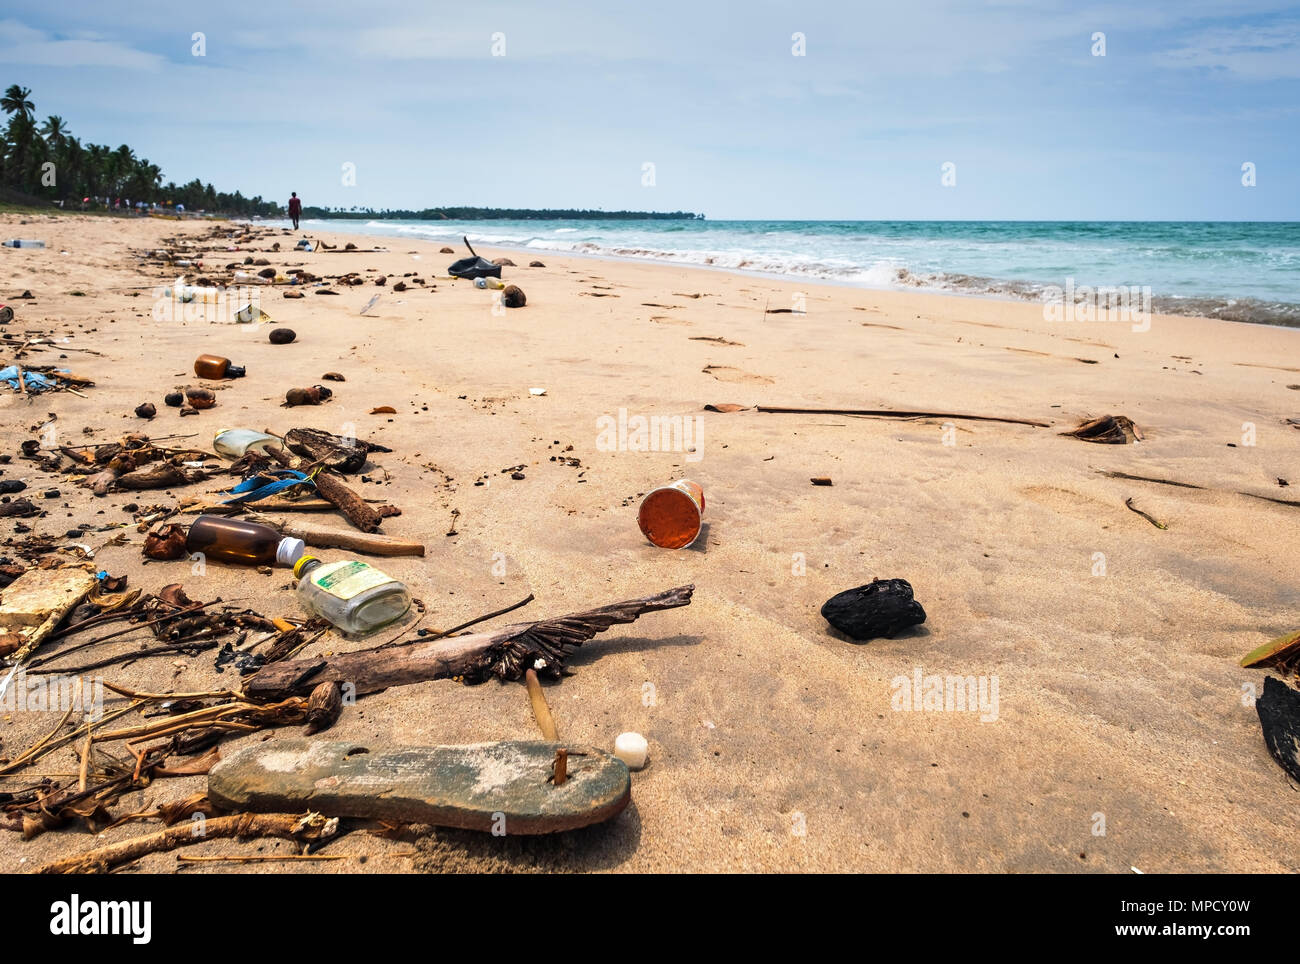 Disaster on seashore of Sri Lanka in Uouveli Trincomale - Stock Image